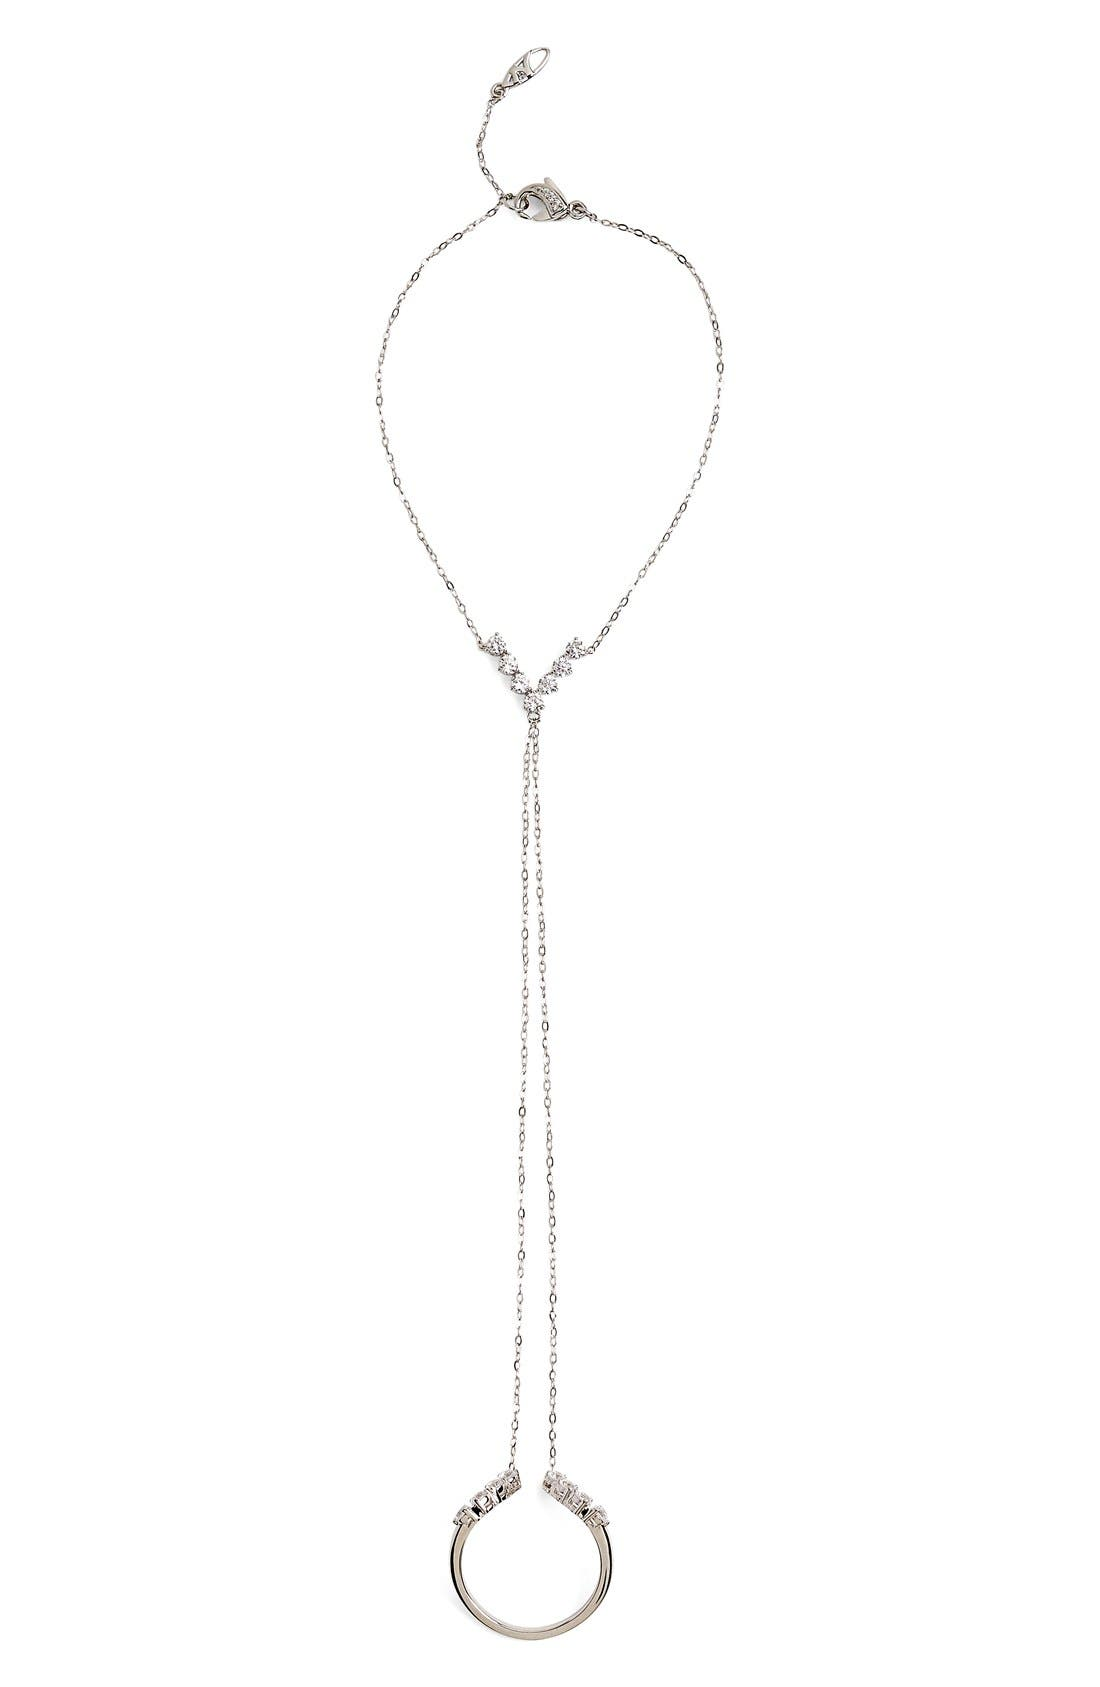 'Salome' Cubic Zirconia Hand Chain,                             Main thumbnail 1, color,                             Silver